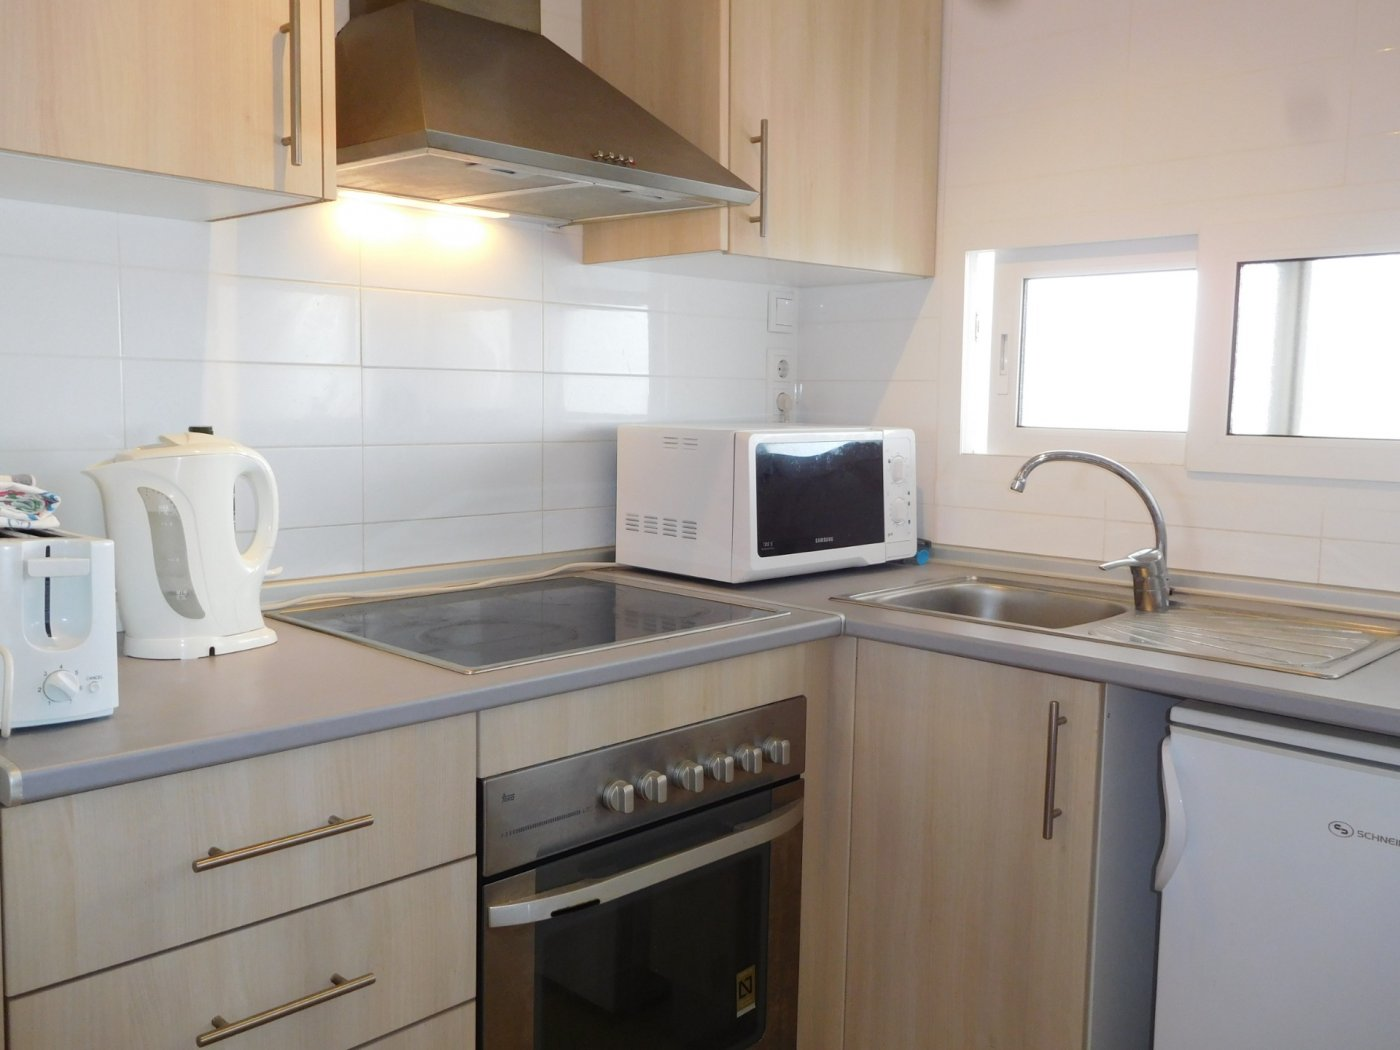 Gallery Image 2 of Apartment For rent in Condado De Alhama, Alhama De Murcia With Pool